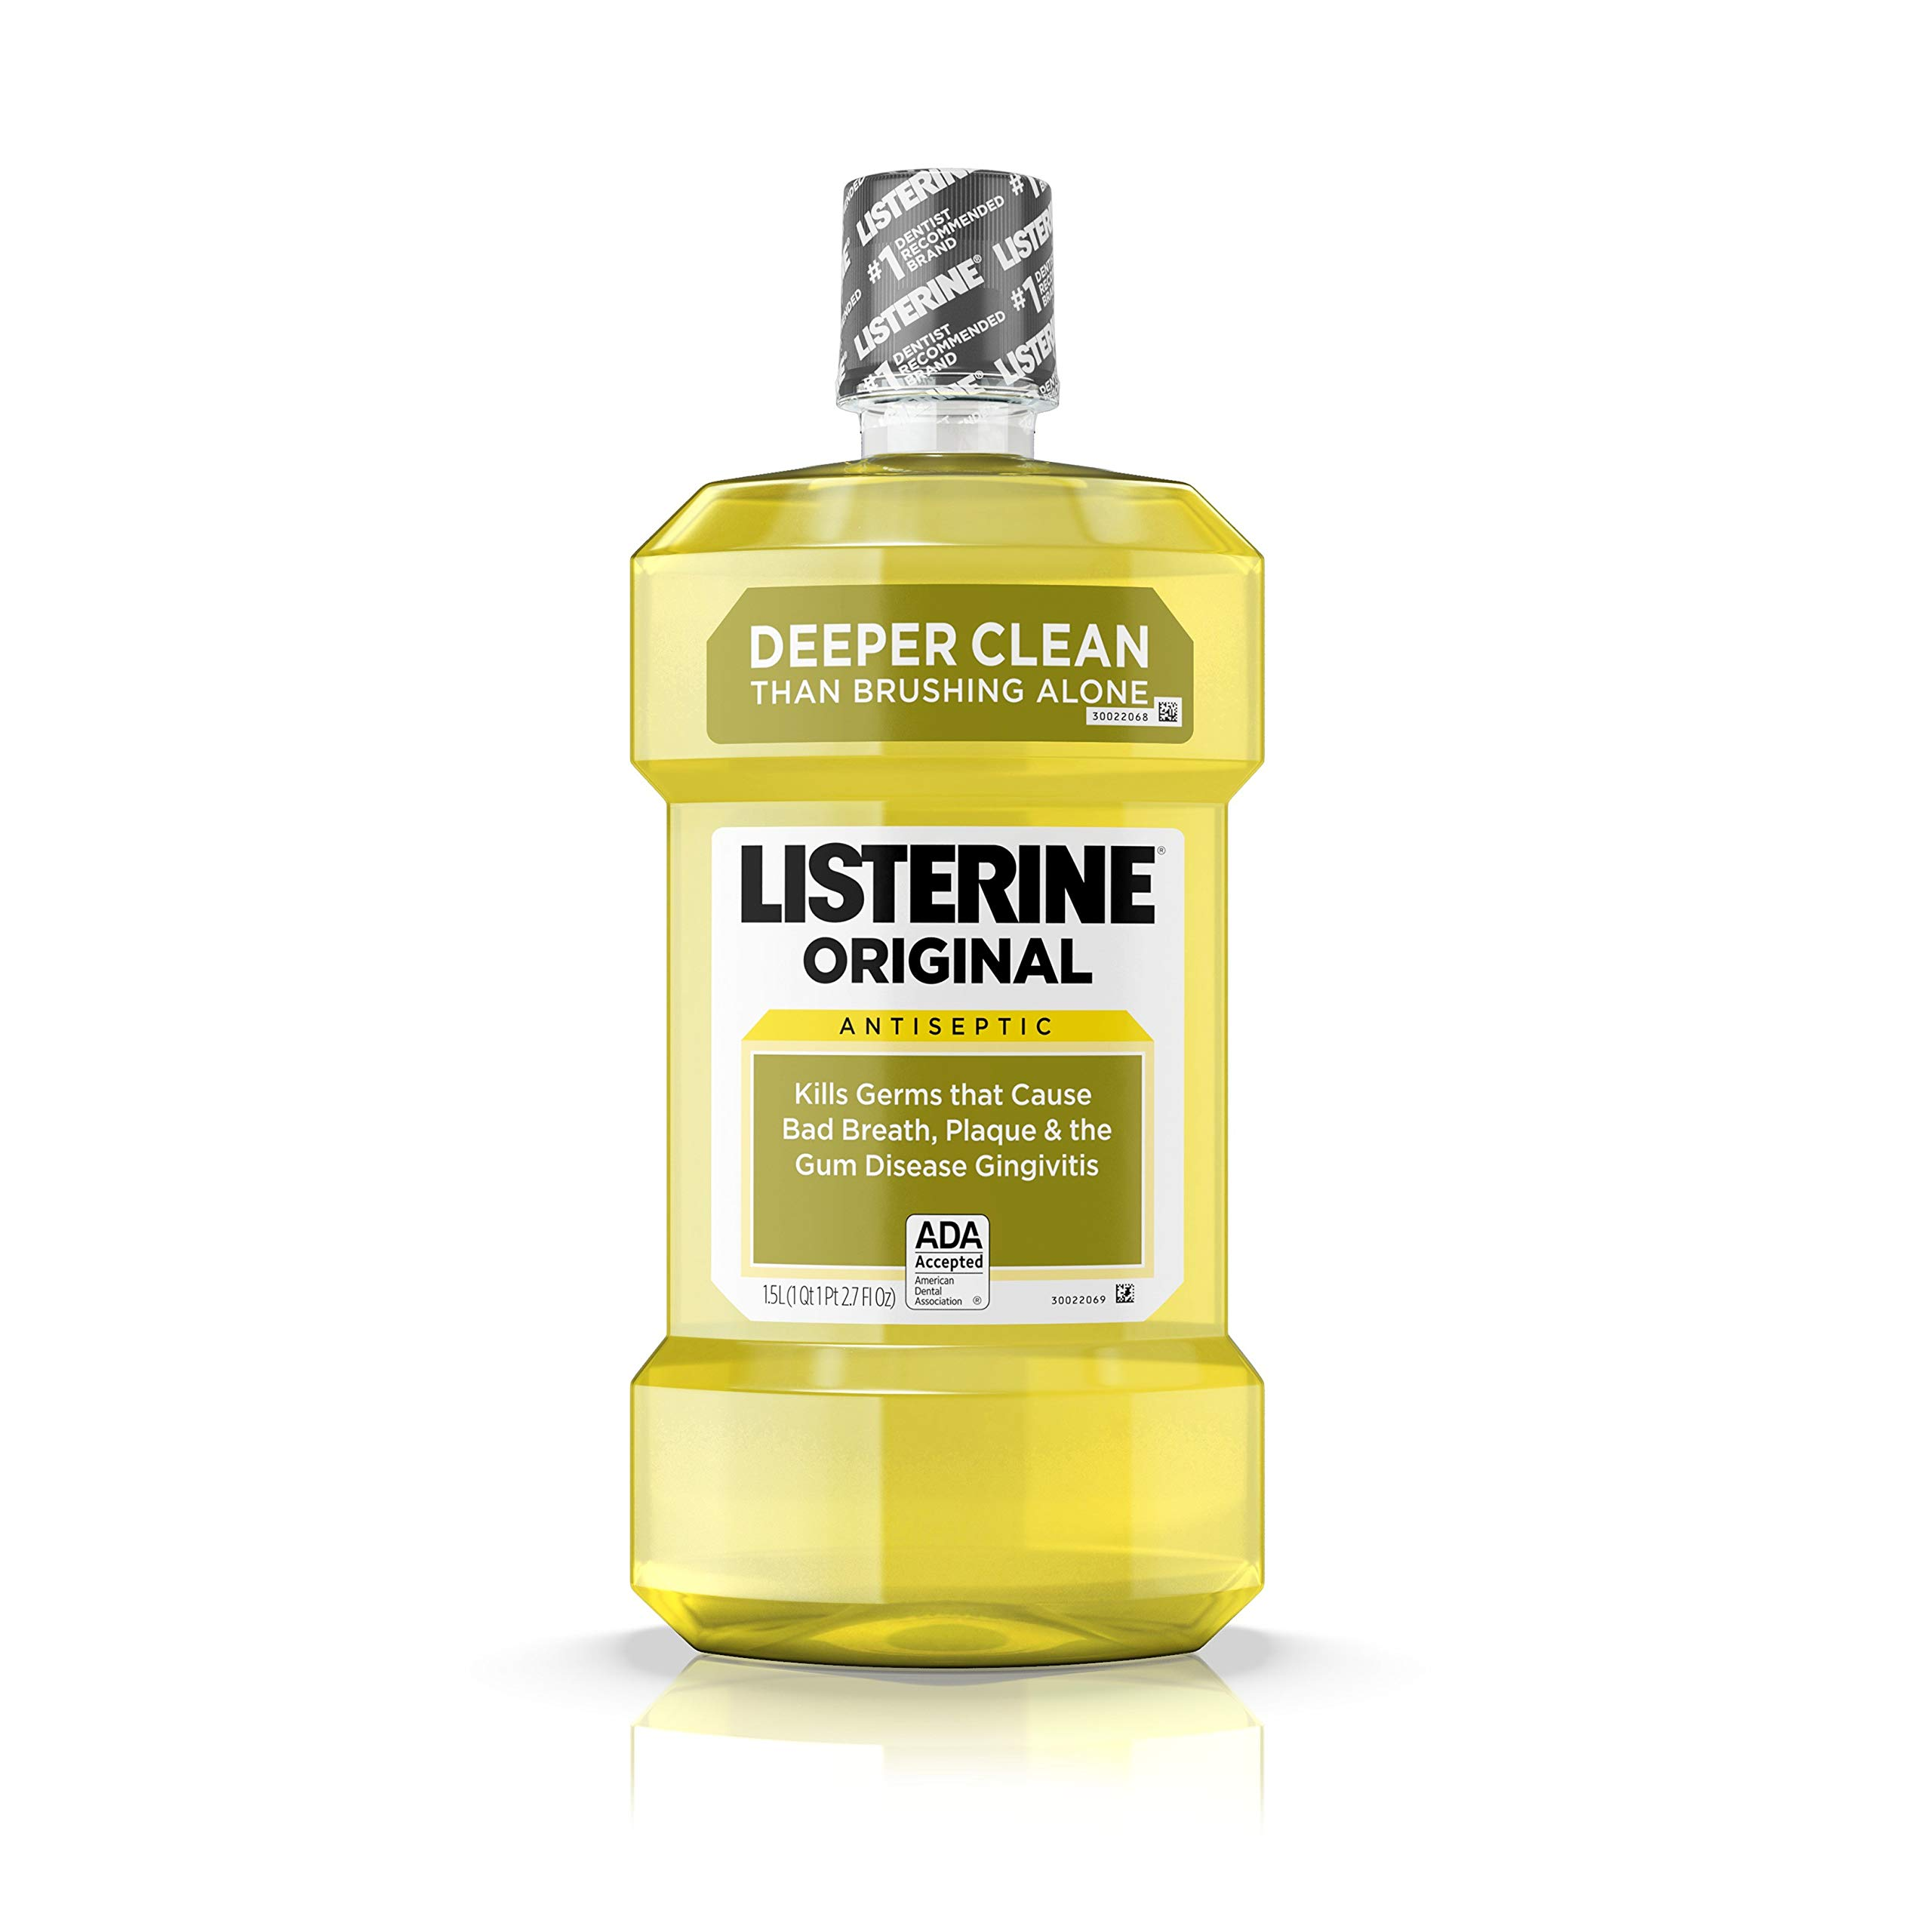 Listerine Original Oral Care Antiseptic Mouthwash with Germ-Killing Formula to Fight Bad Breath, Plaque and Gingivitis, 50.7 Fl Oz